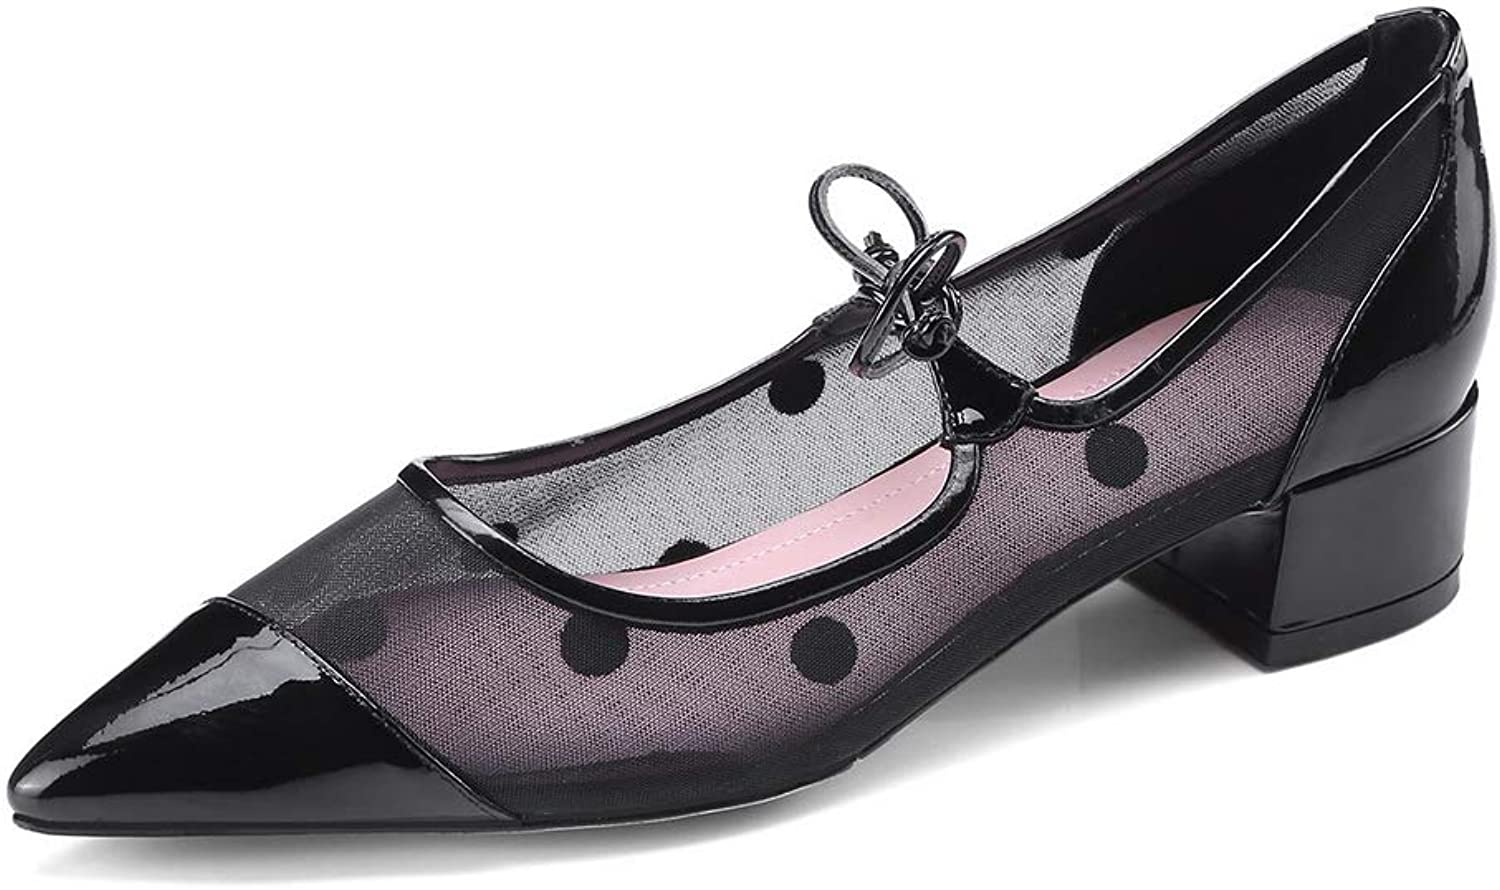 BalaMasa Womens Hounds-Tooth Lace Dress Urethane Pumps shoes APL11187